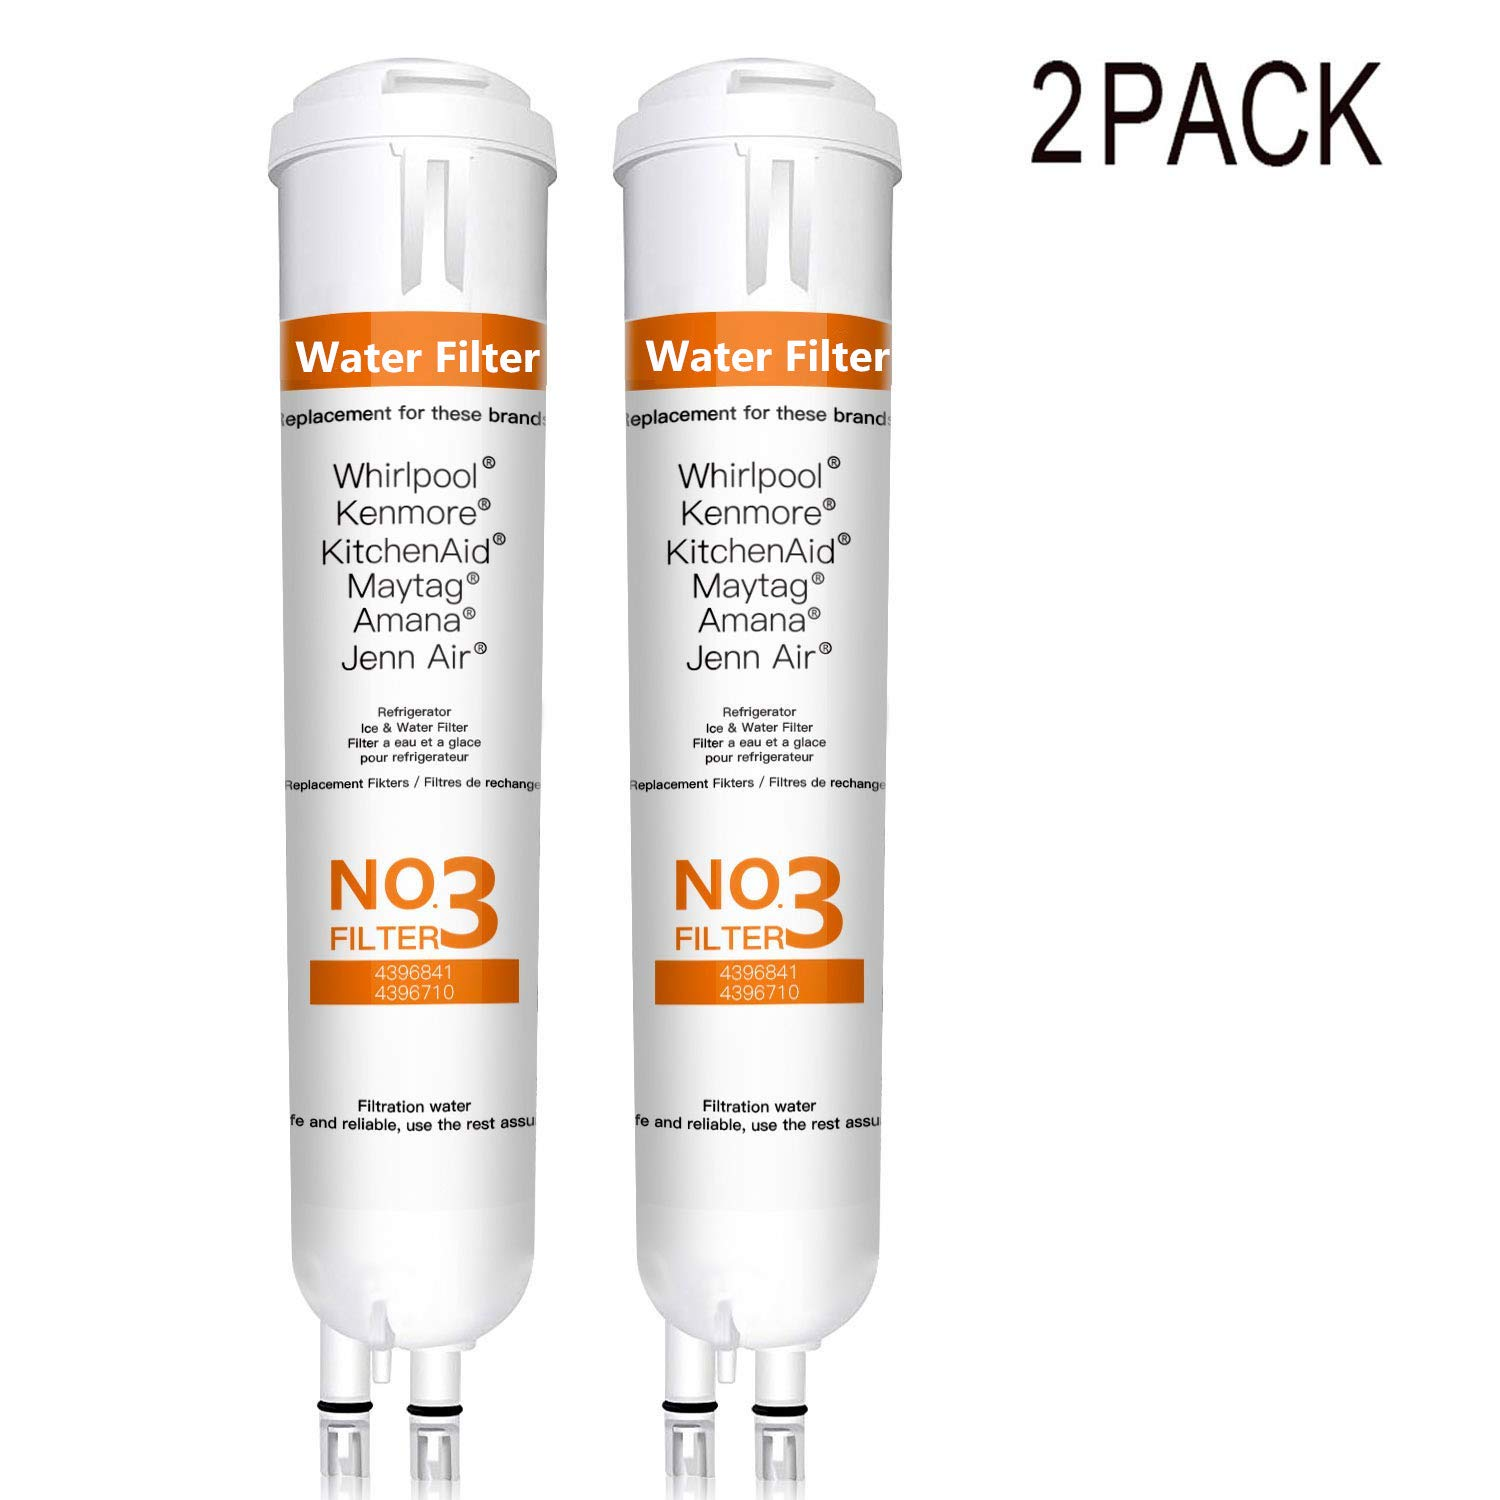 BOYTY Refrigerator Water Filter 9083 Replacement for Ken-More Refrigerator Water Filter 9083 469083 9030 469030 46-9020(White 2 Pack)